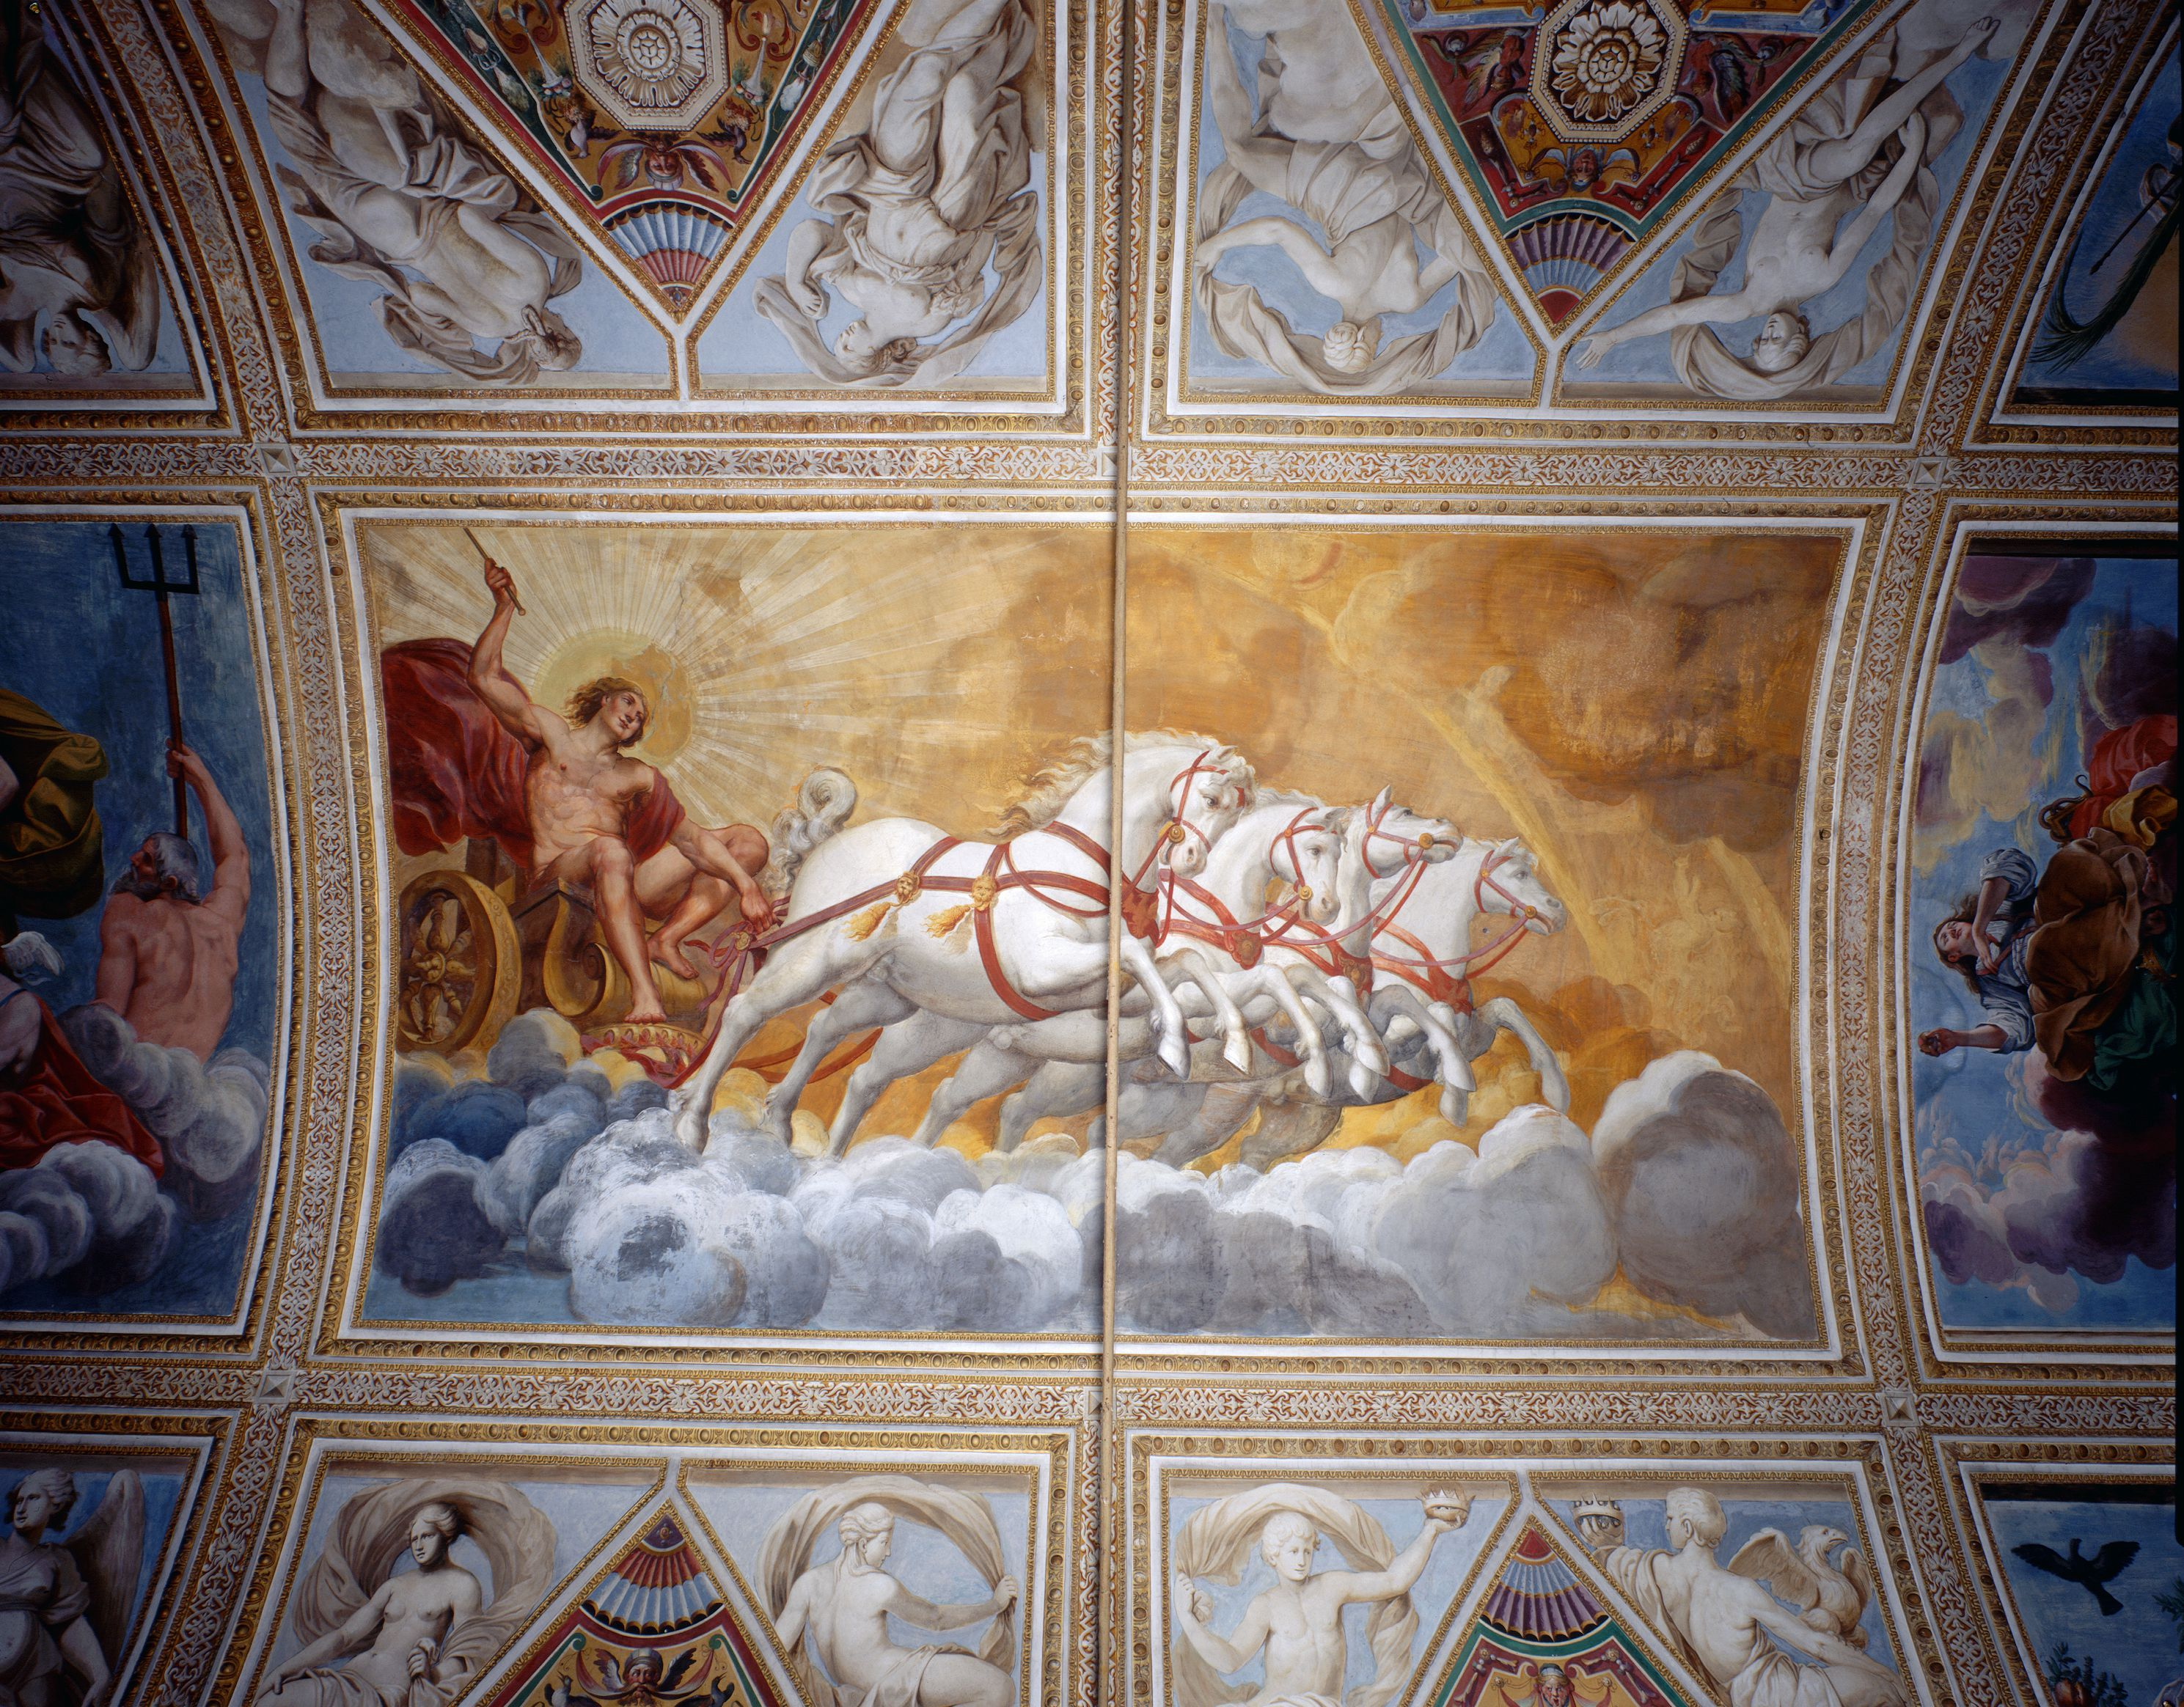 Ceiling mural of Chariot of the Sun Driven by Apollo by Antonio Maria Viani